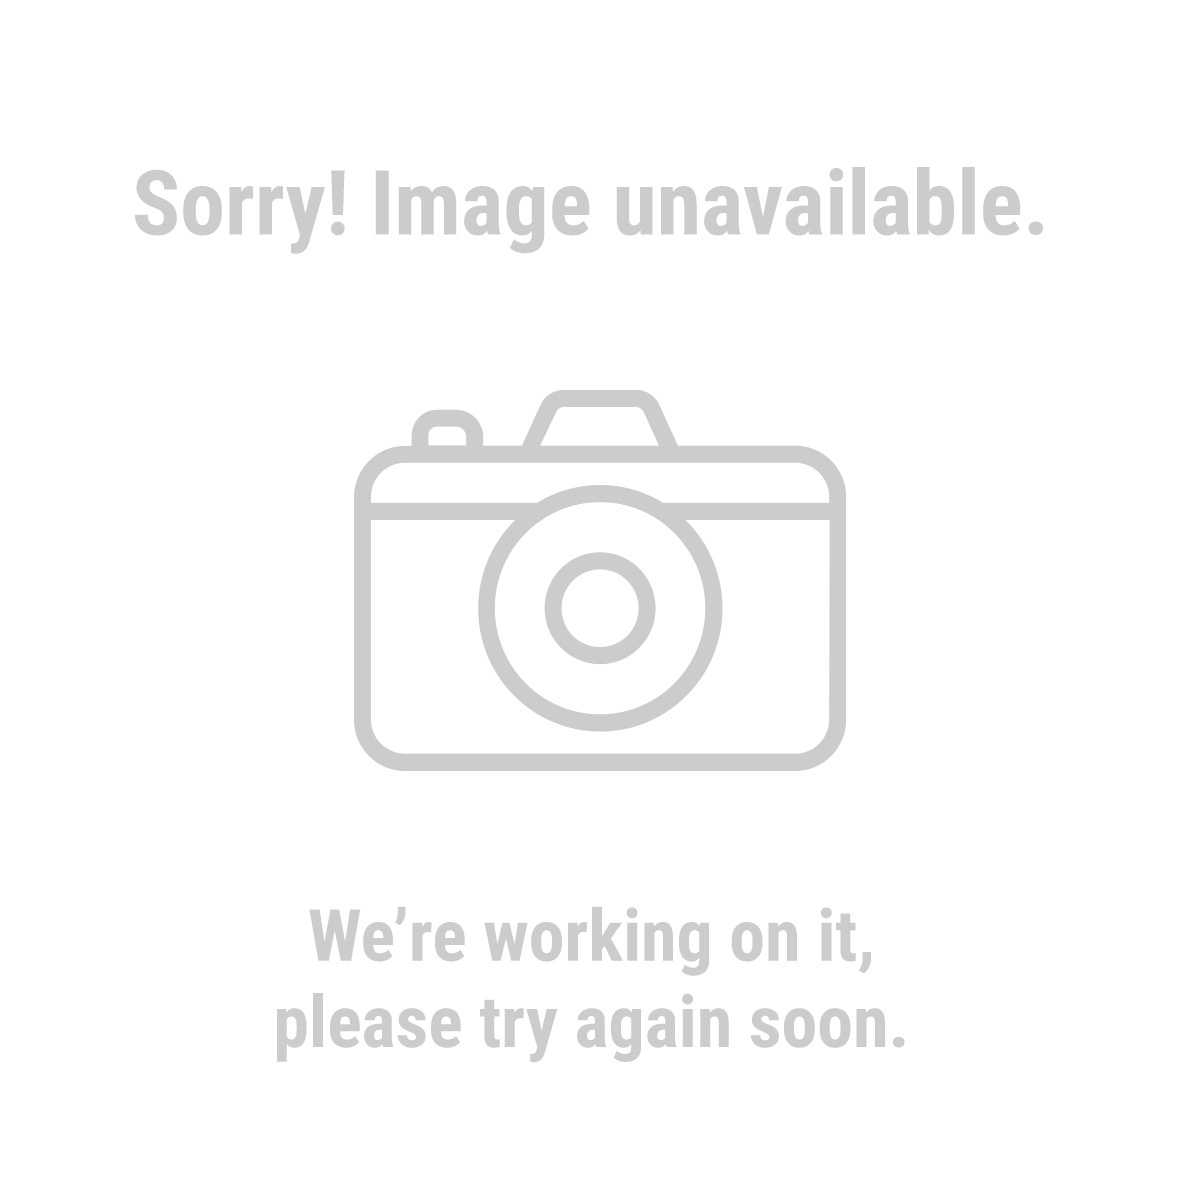 Greenwood® 9583 12 Volt 15 Gallon Spot Sprayer